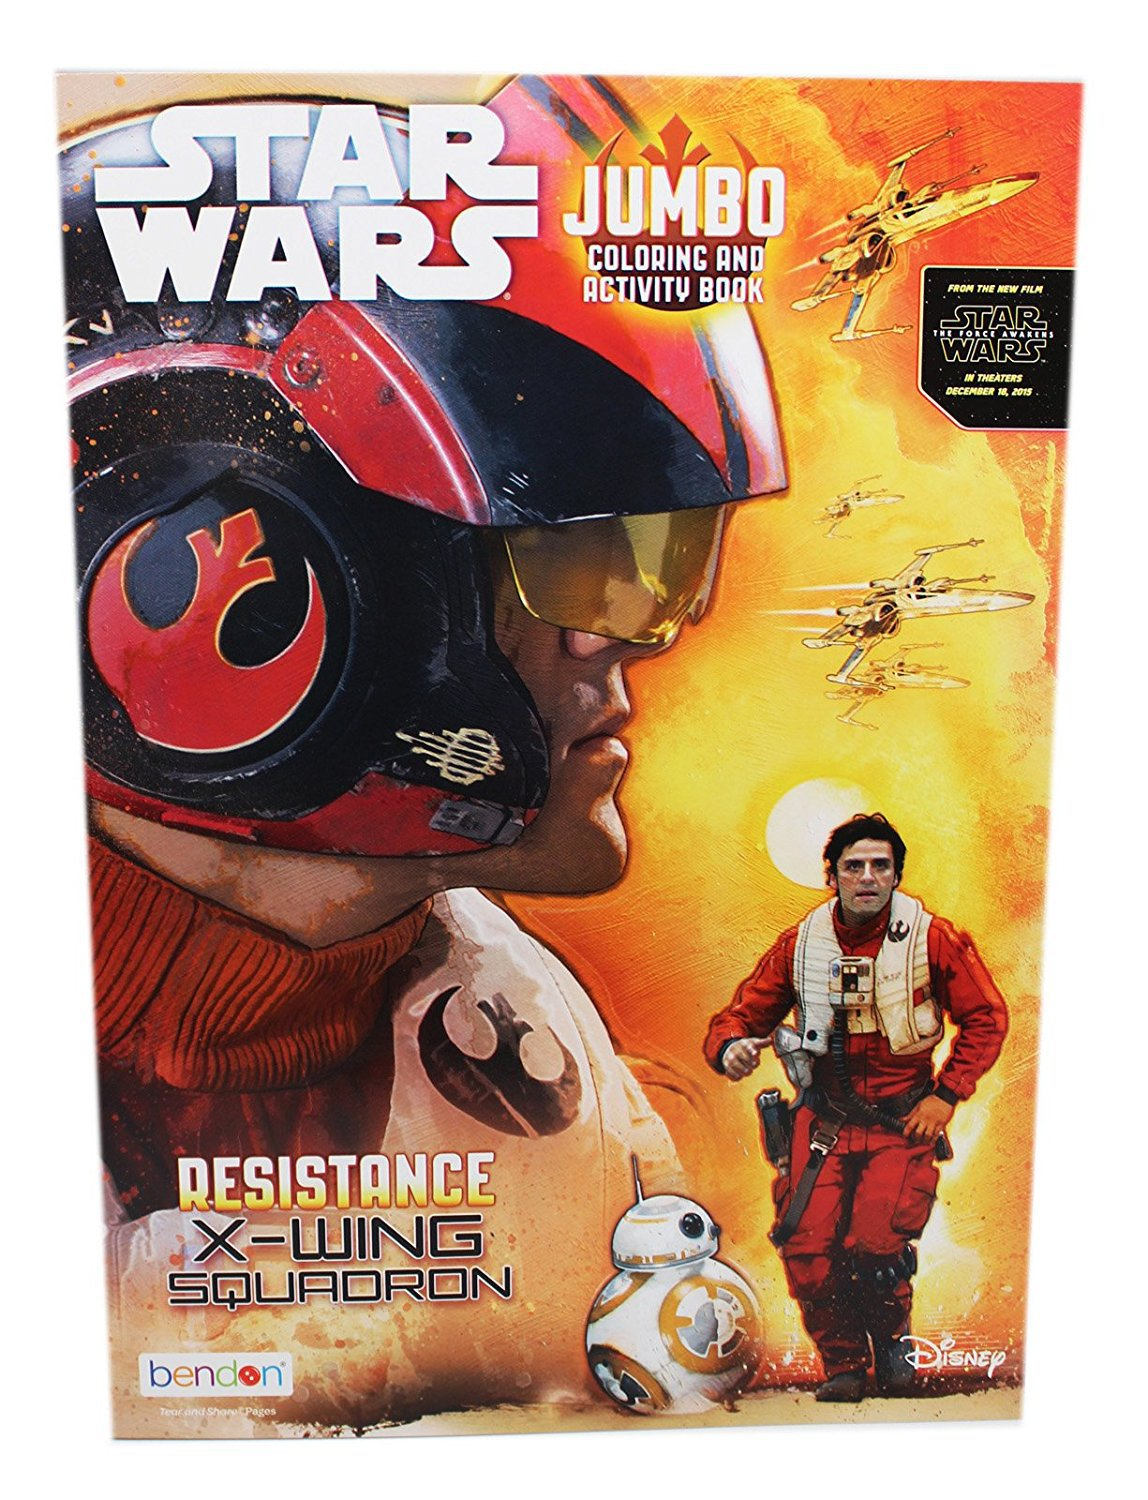 Star Wars Resistance X-Wing Squadron Jumbo Coloring and Activity Book